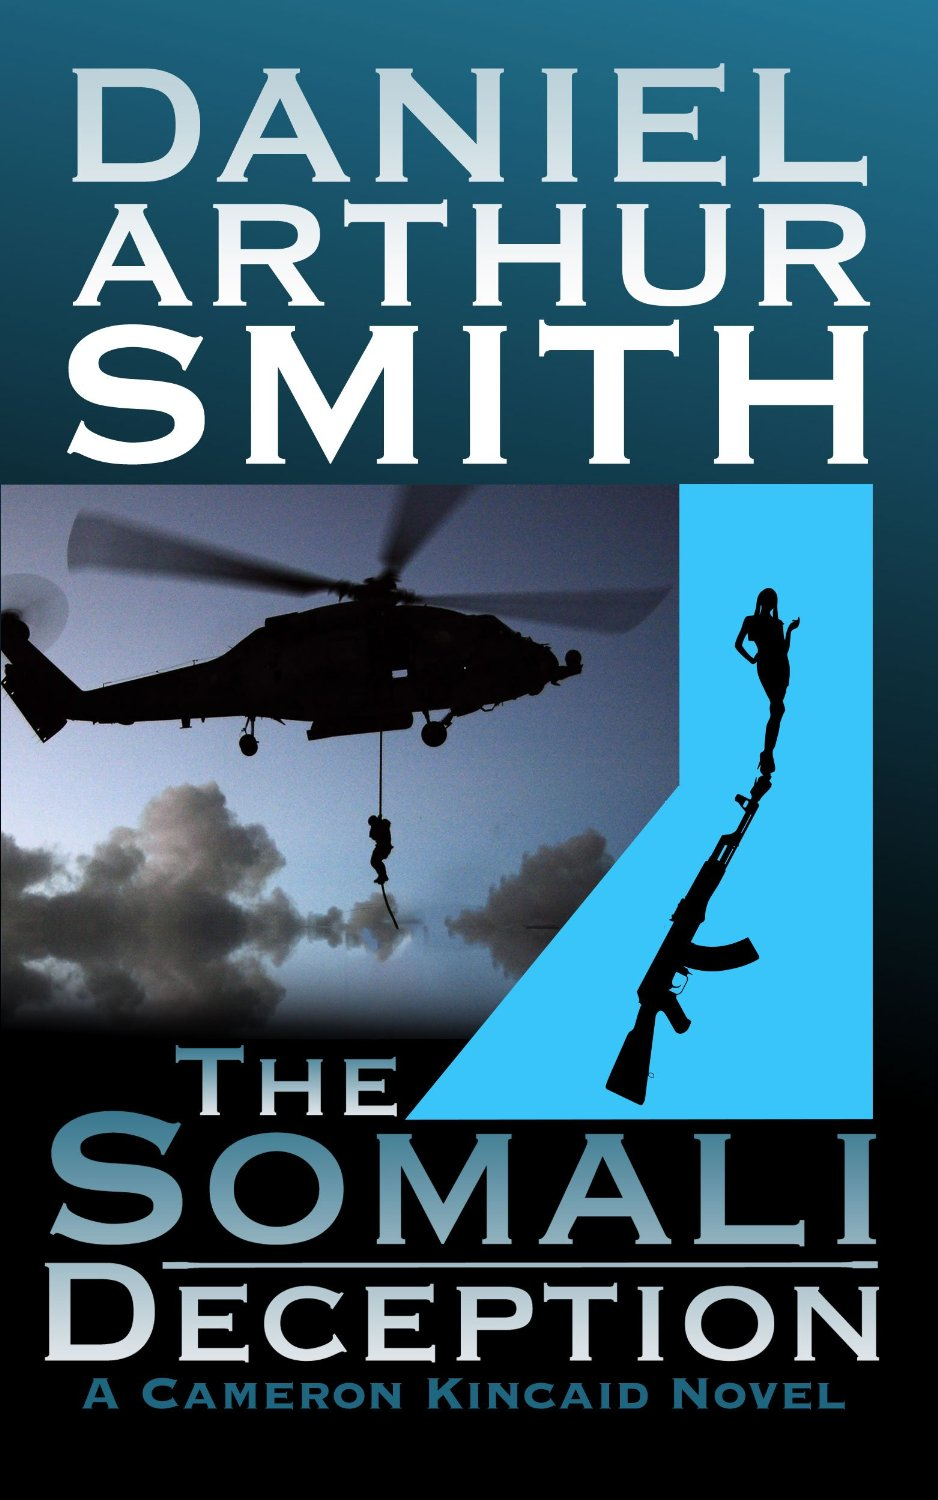 The Somali Deception by Daniel Arthur Smith